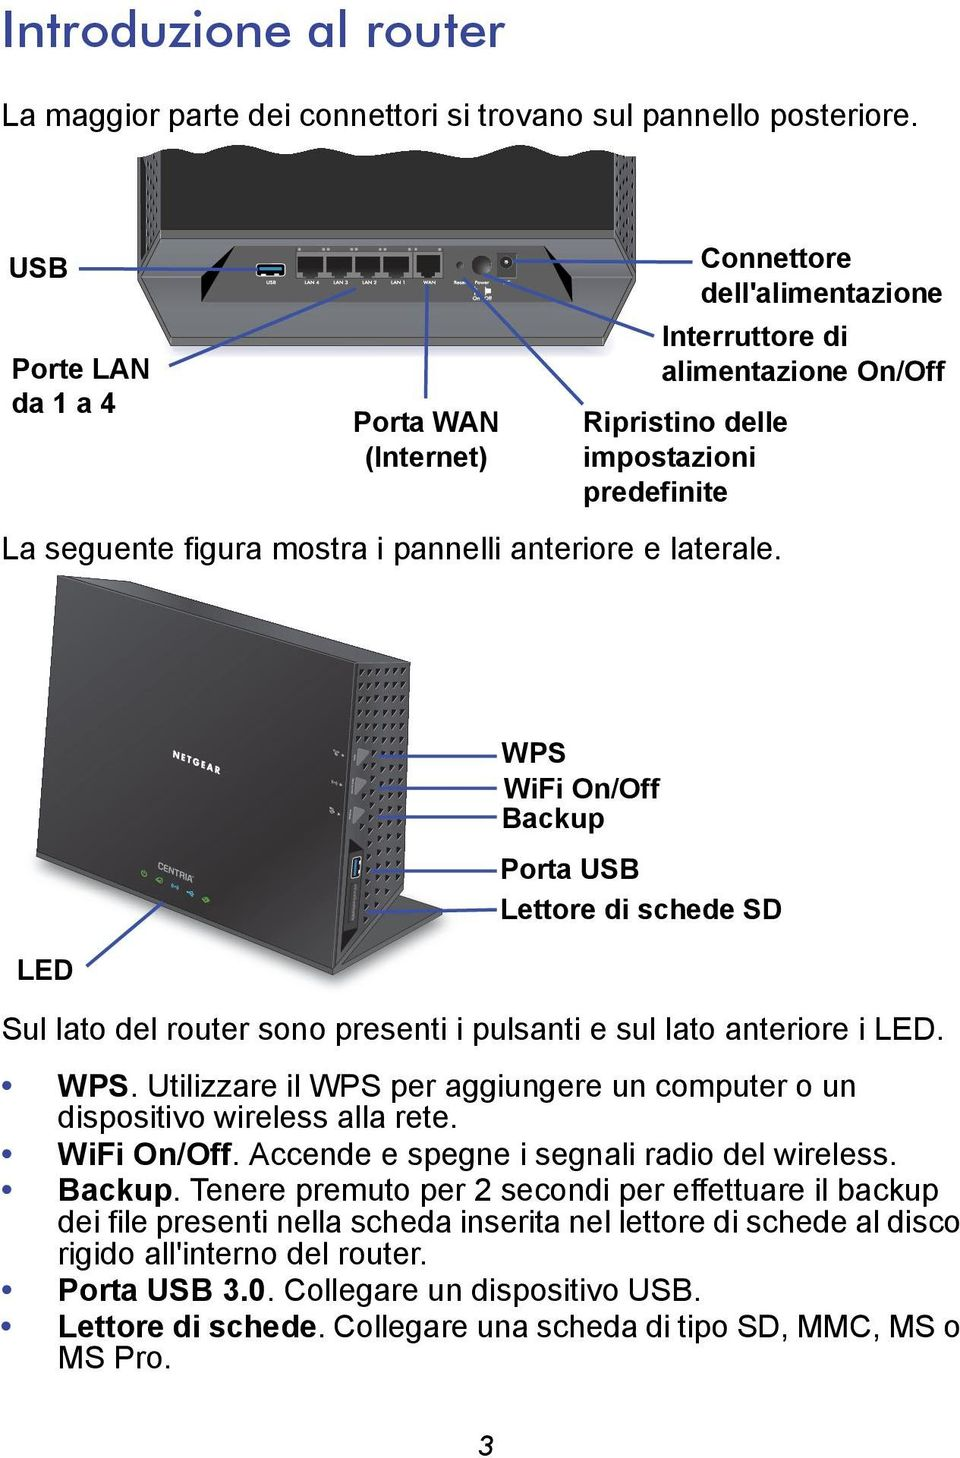 e laterale. LED WPS WiFi On/Off Backup Porta USB Lettore di schede SD Sul lato del router sono presenti i pulsanti e sul lato anteriore i LED. WPS. Utilizzare il WPS per aggiungere un computer o un dispositivo wireless alla rete.